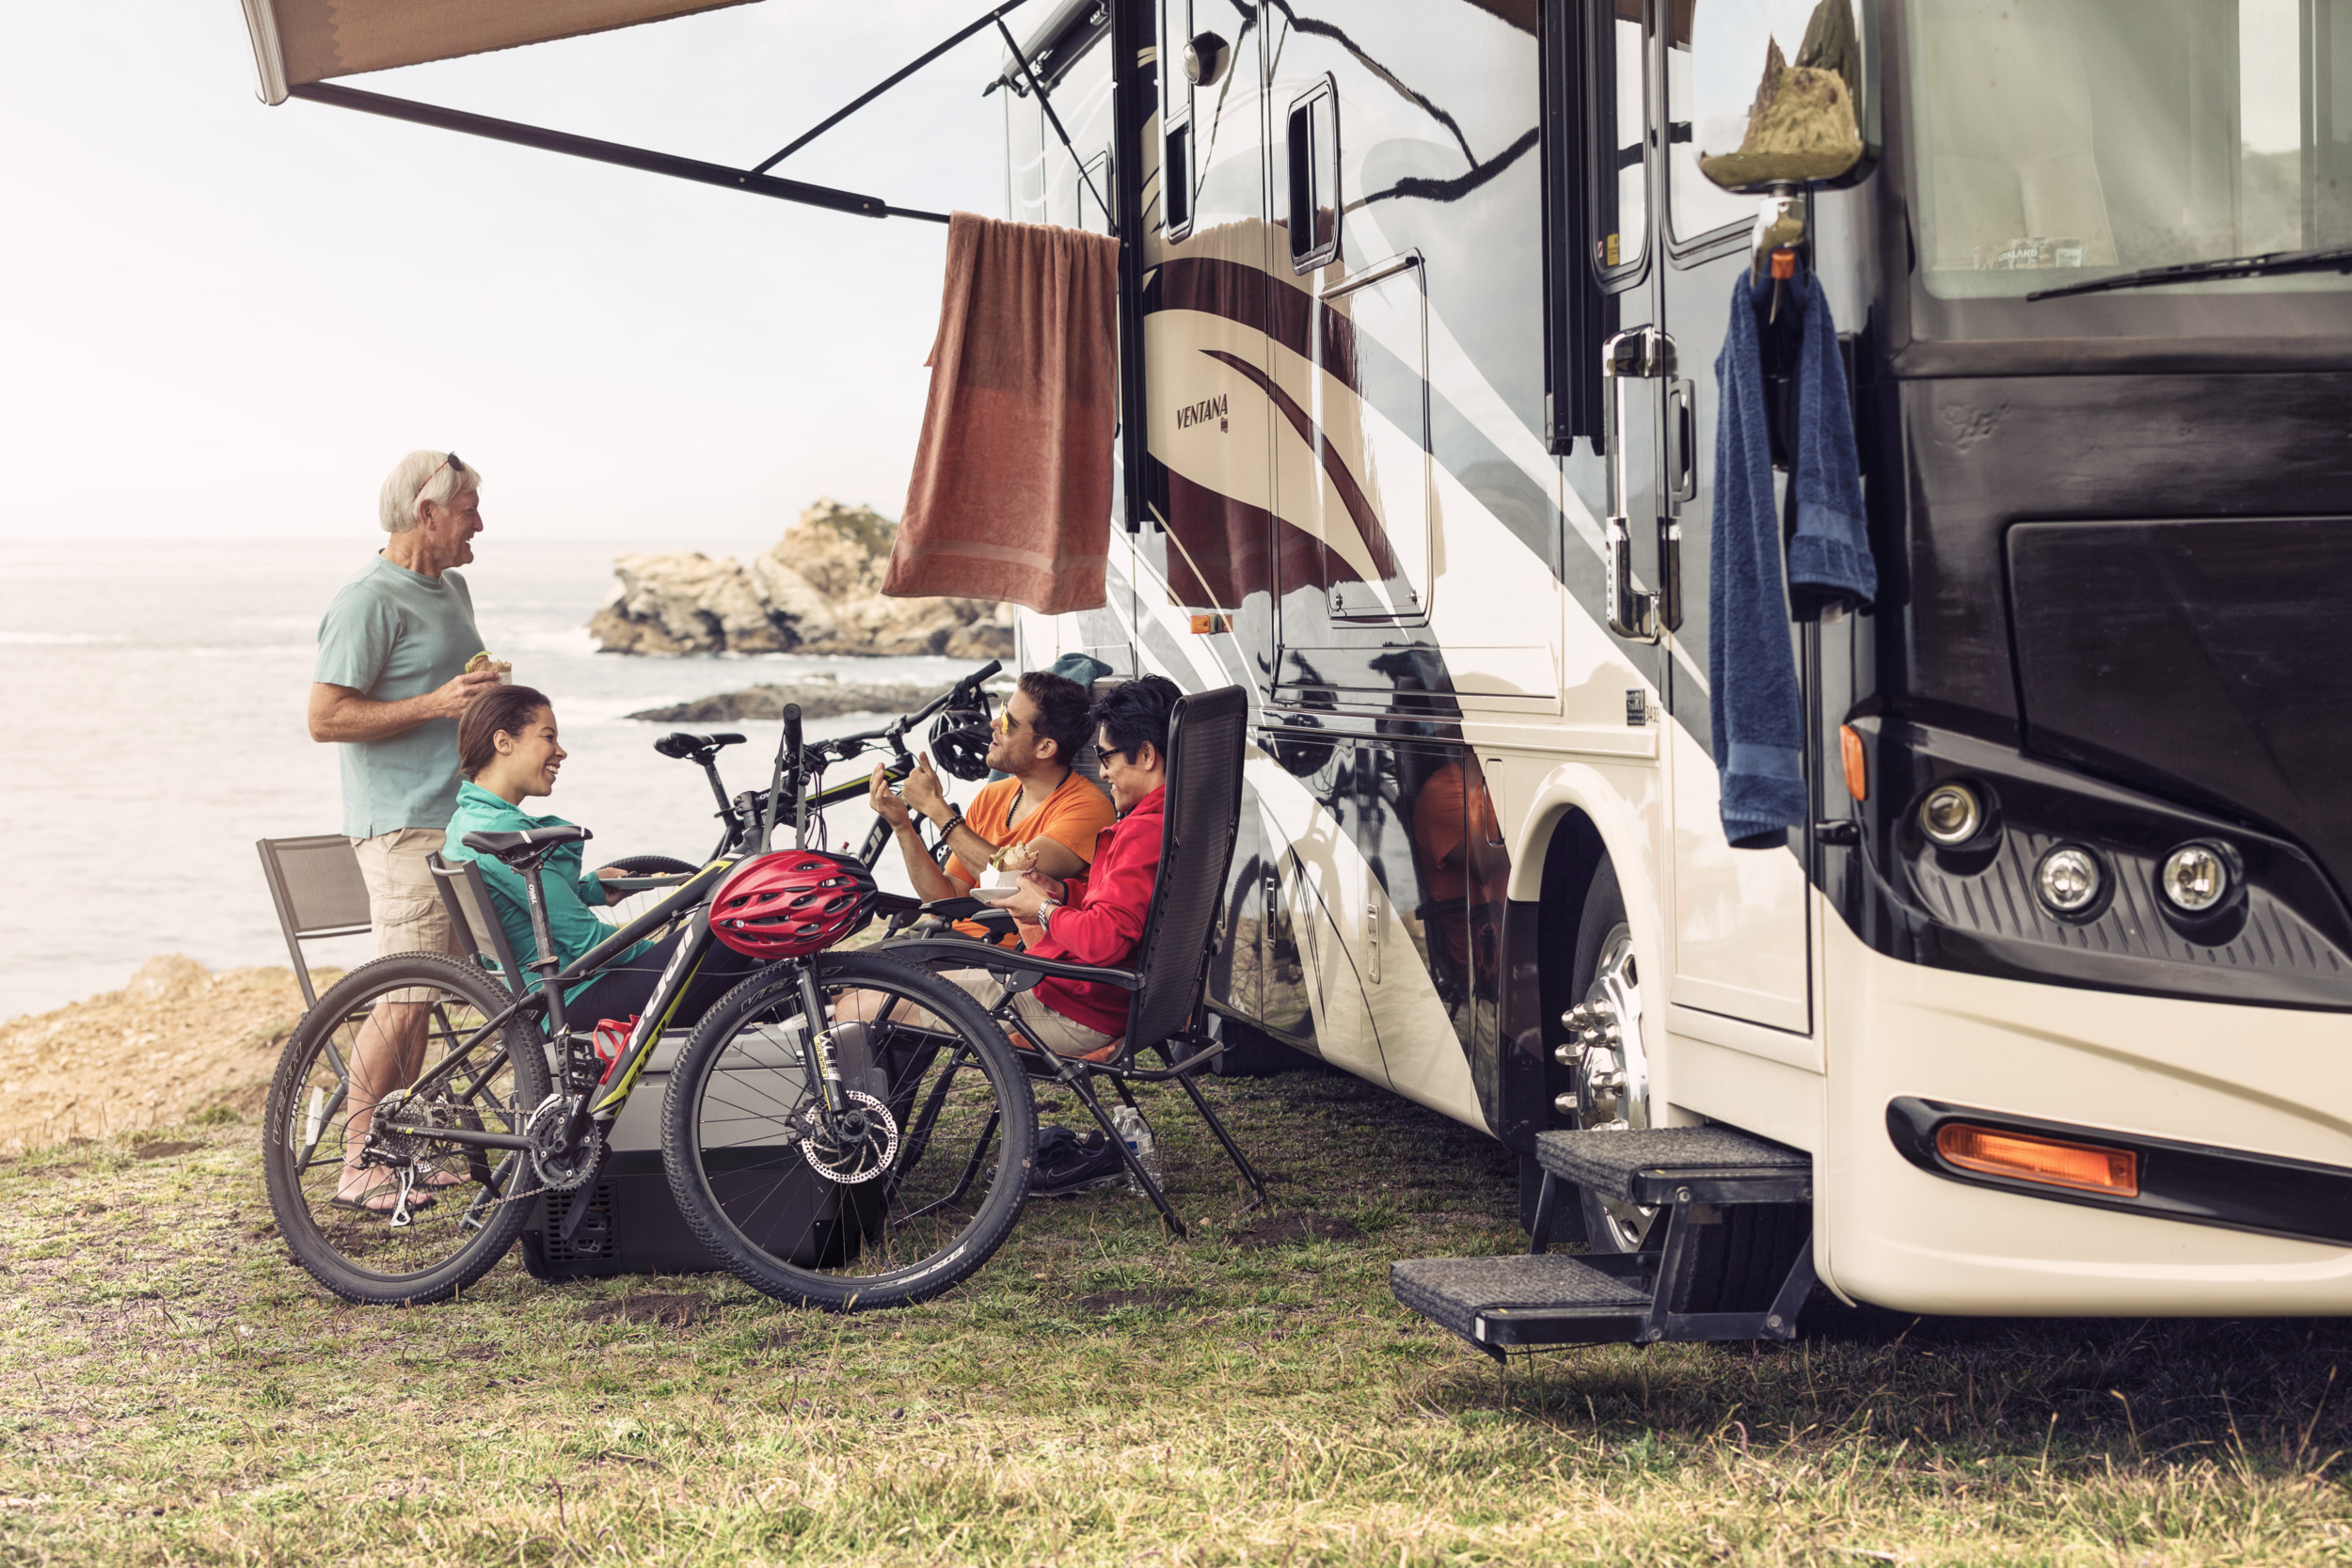 ᐅ Awnings for RV - Stylish and durable | Dometic